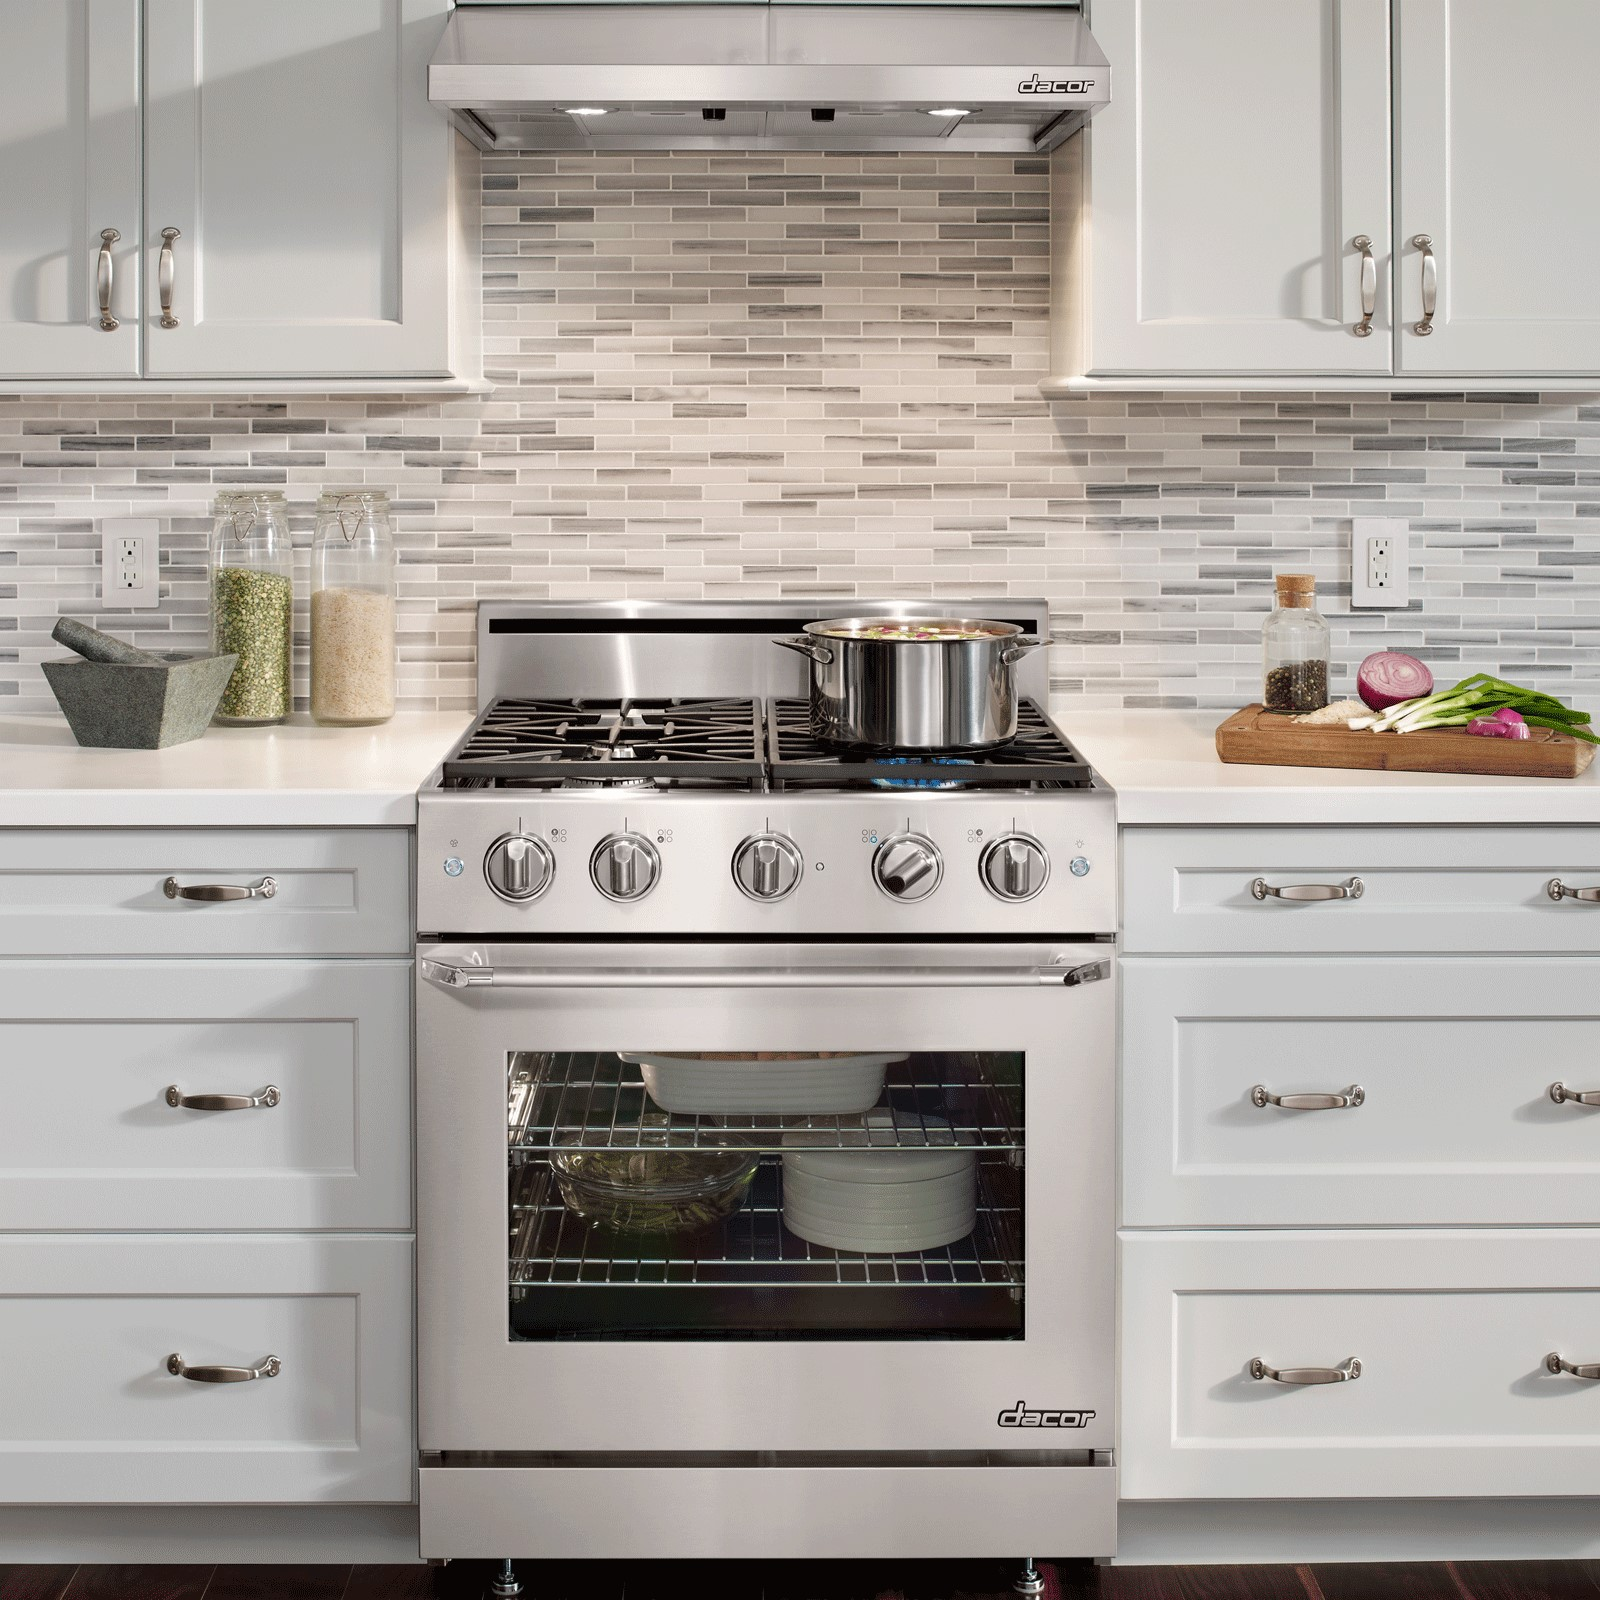 Image result for gas stove inside kitchen